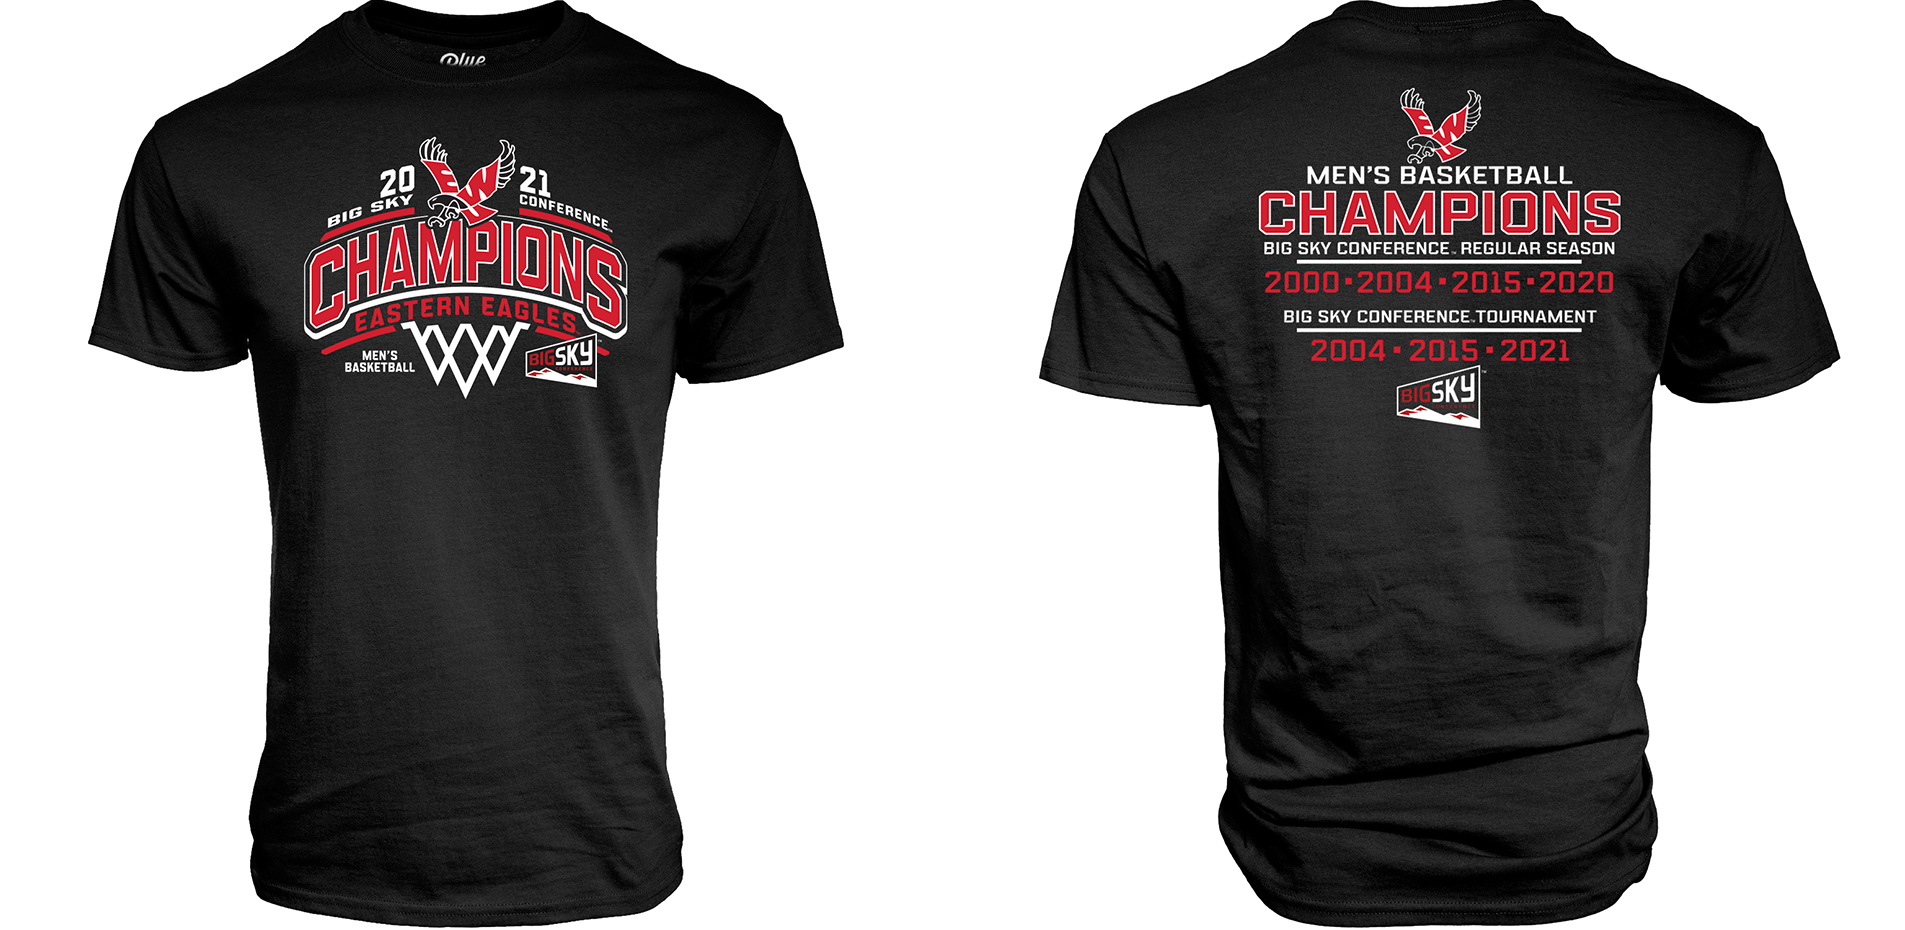 Purchase your 2021 Basketball Champions Tee